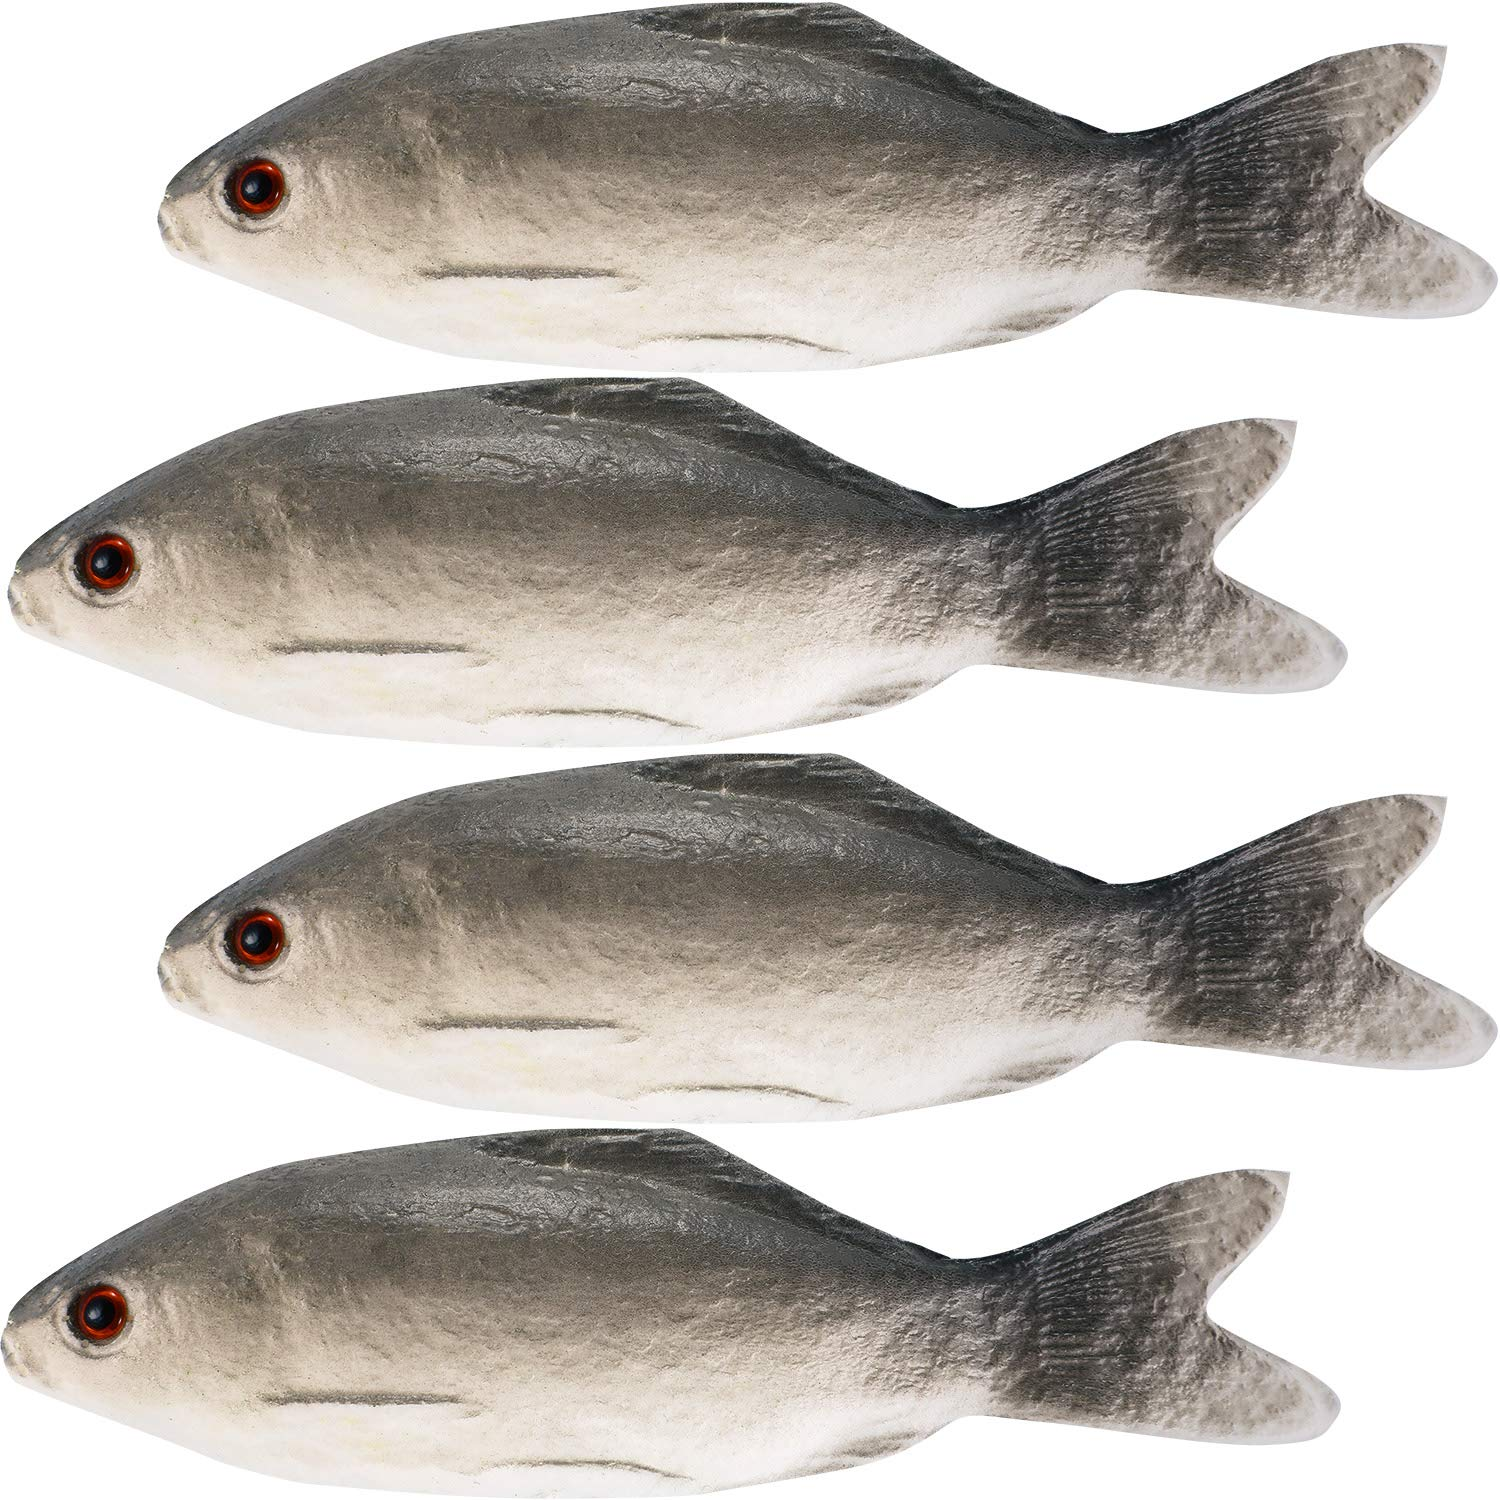 Gejoy 4 Pieces Fake Fish Simulated Fish Artificial Sea Fish Model for Home Party Market Display Kids Toy Kitchen Decoration Photography Props by Gejoy